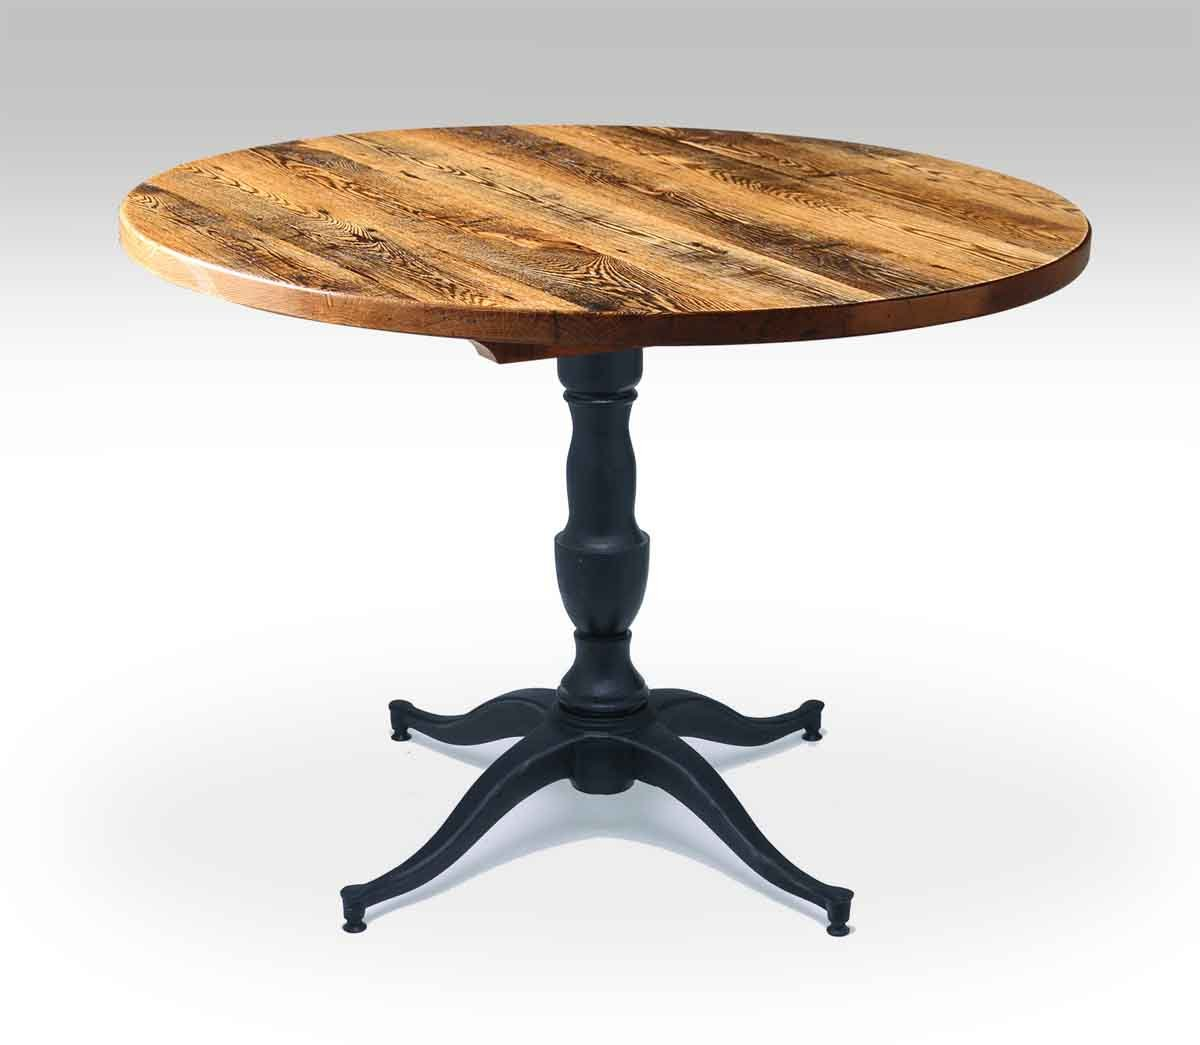 Antique Round Tables Furniture